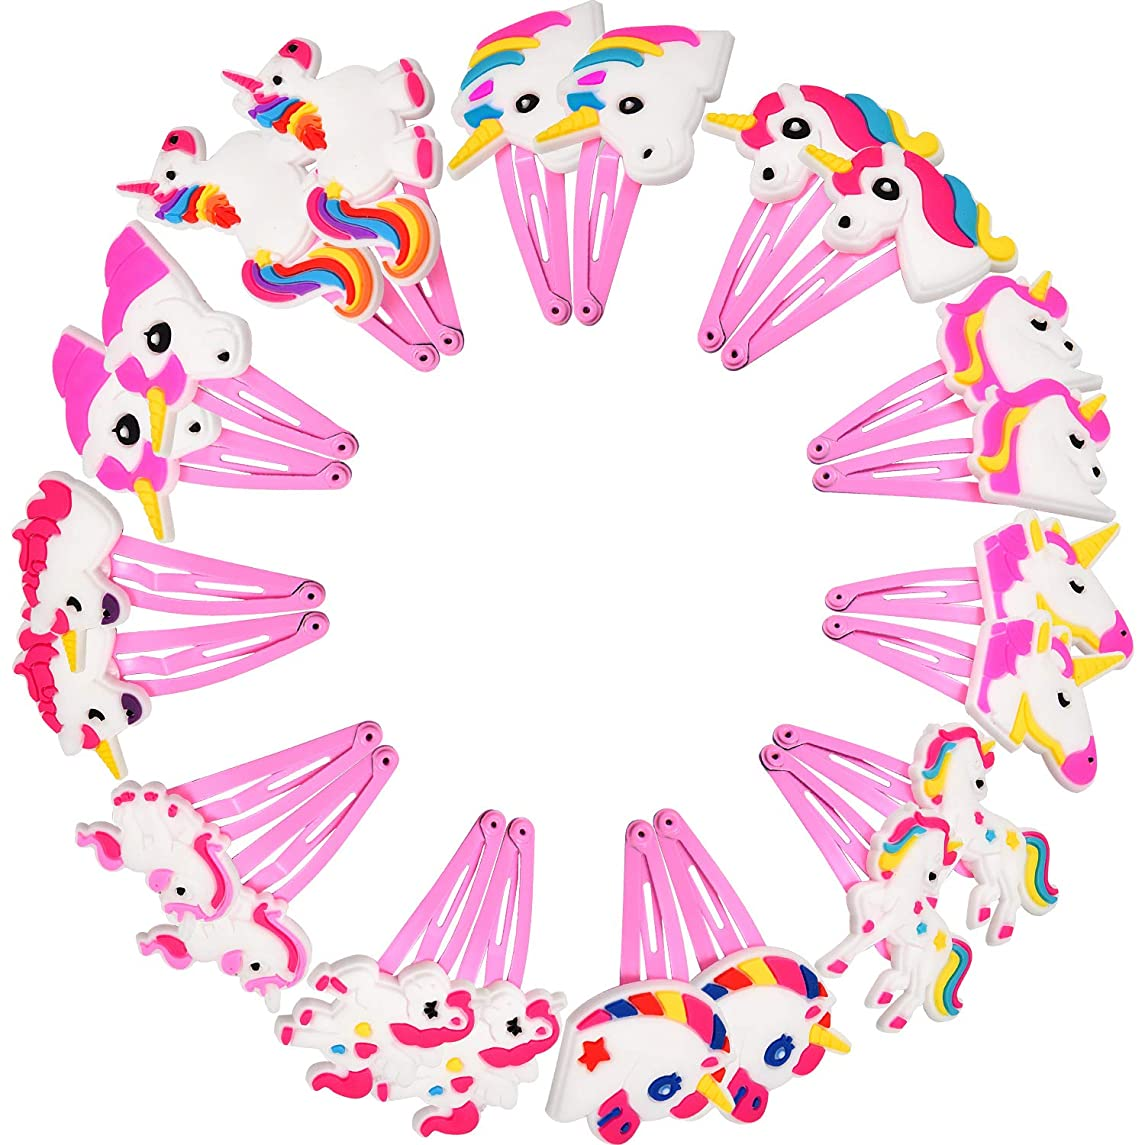 BBTO 22 Pieces Unicorn Pattern Hair Clips 1.57 inch Anti-slip Snap Hair Clips Barrettes Hairpins for Baby Girls Unicorn Party Supplies